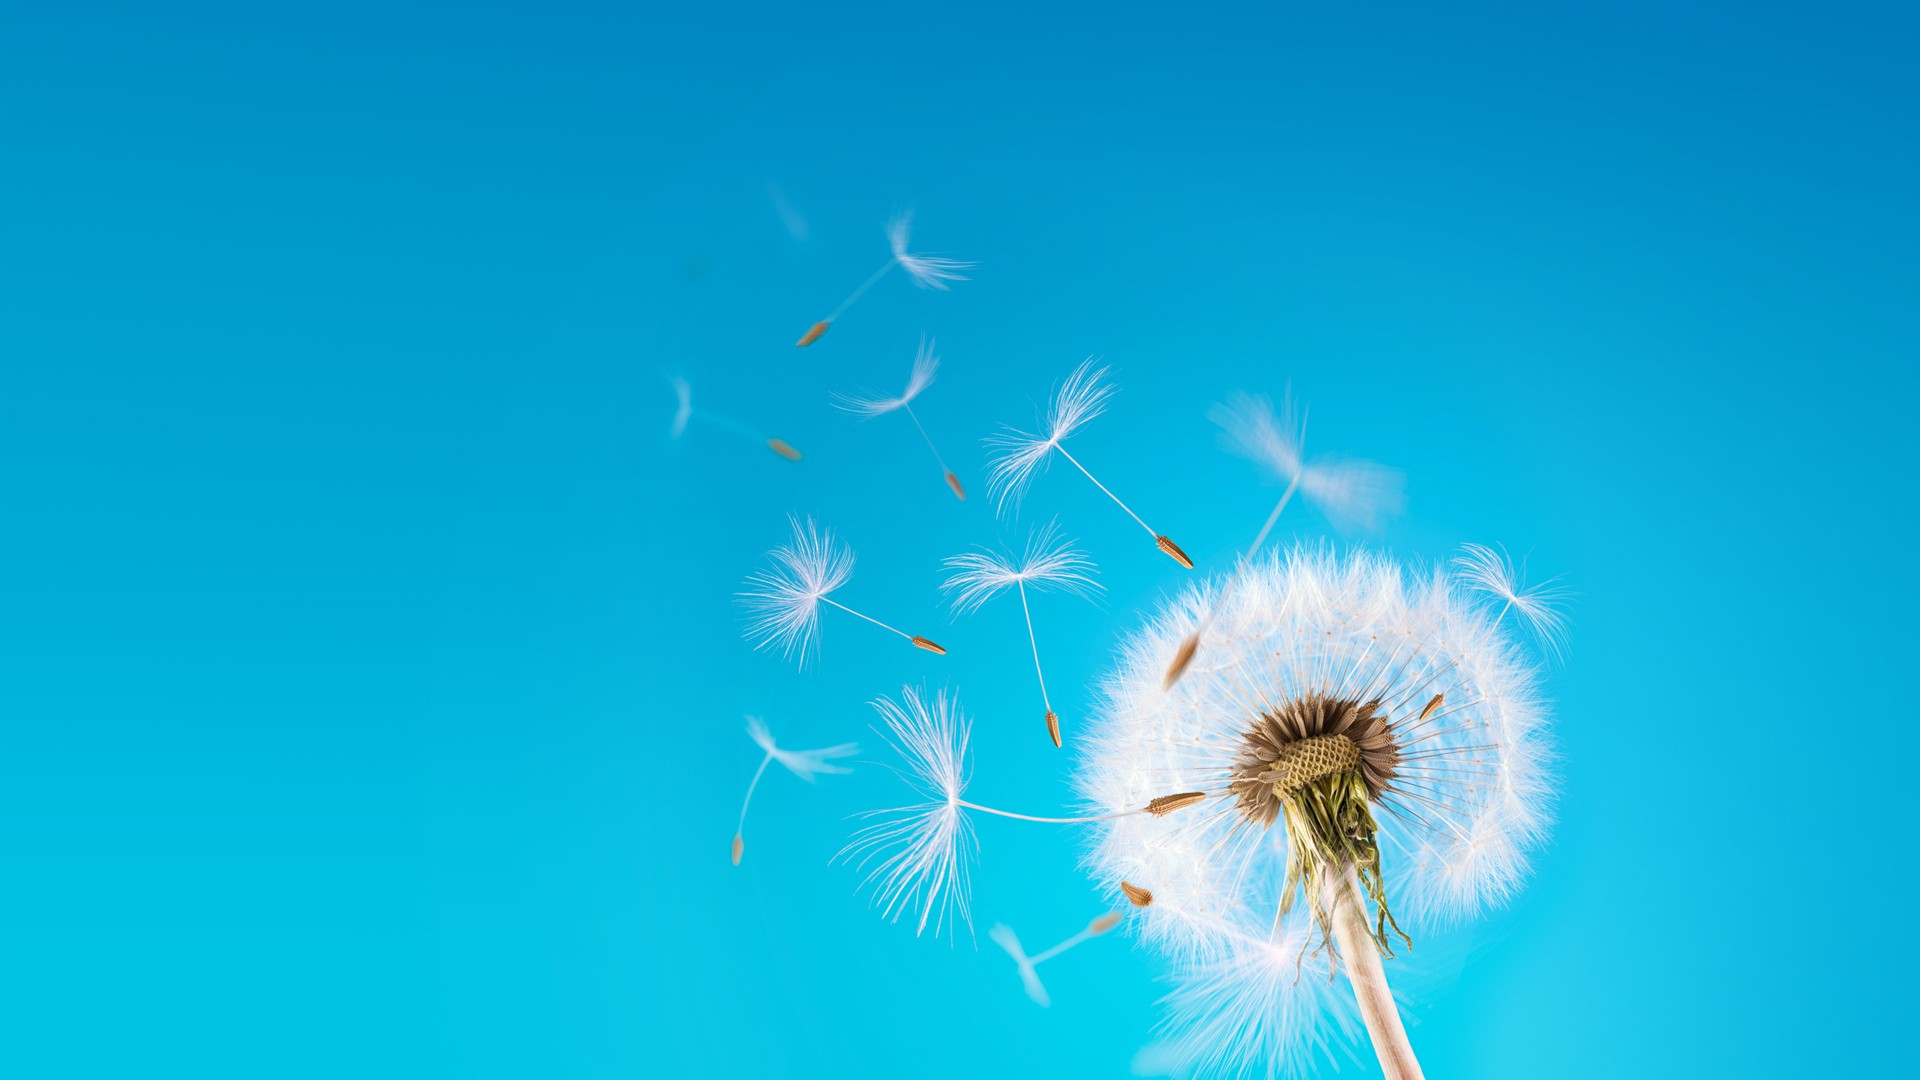 Dandelion-Background-Wallpapers-HD-Free-Download-01